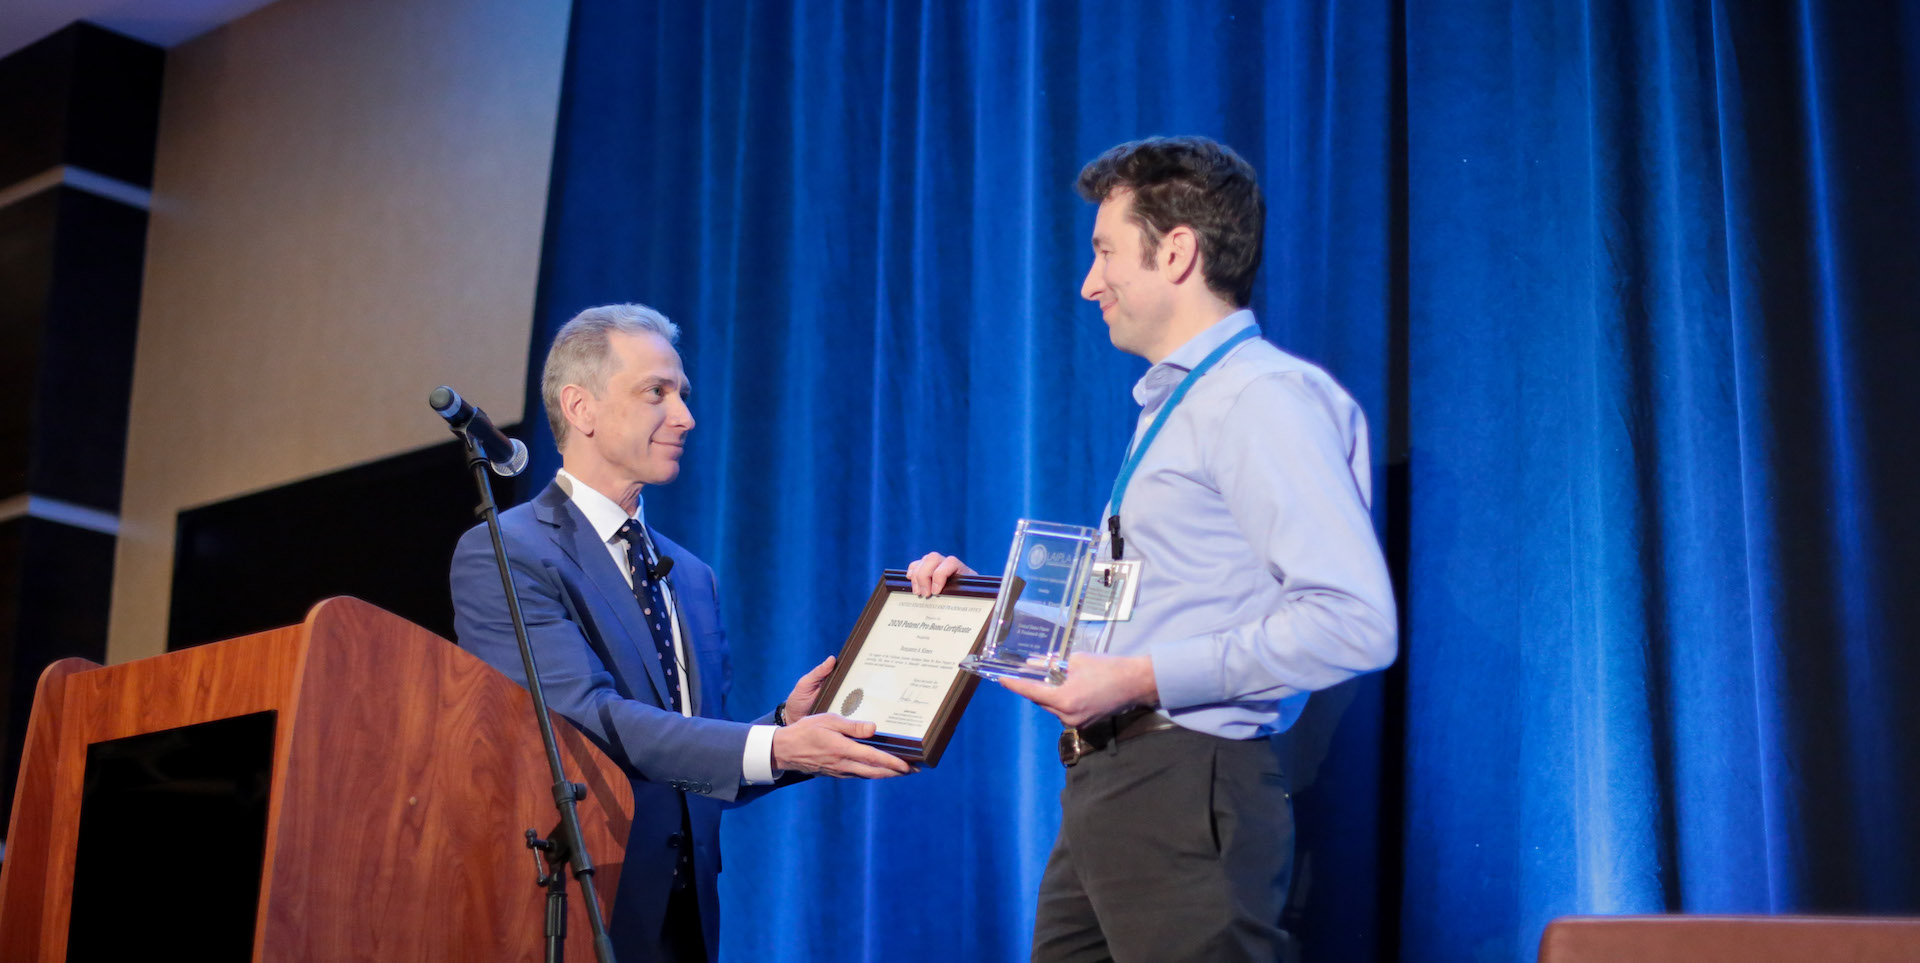 USPTO's Andrei Iancu presents an award at LAIPLA's Washington in the West, 2020